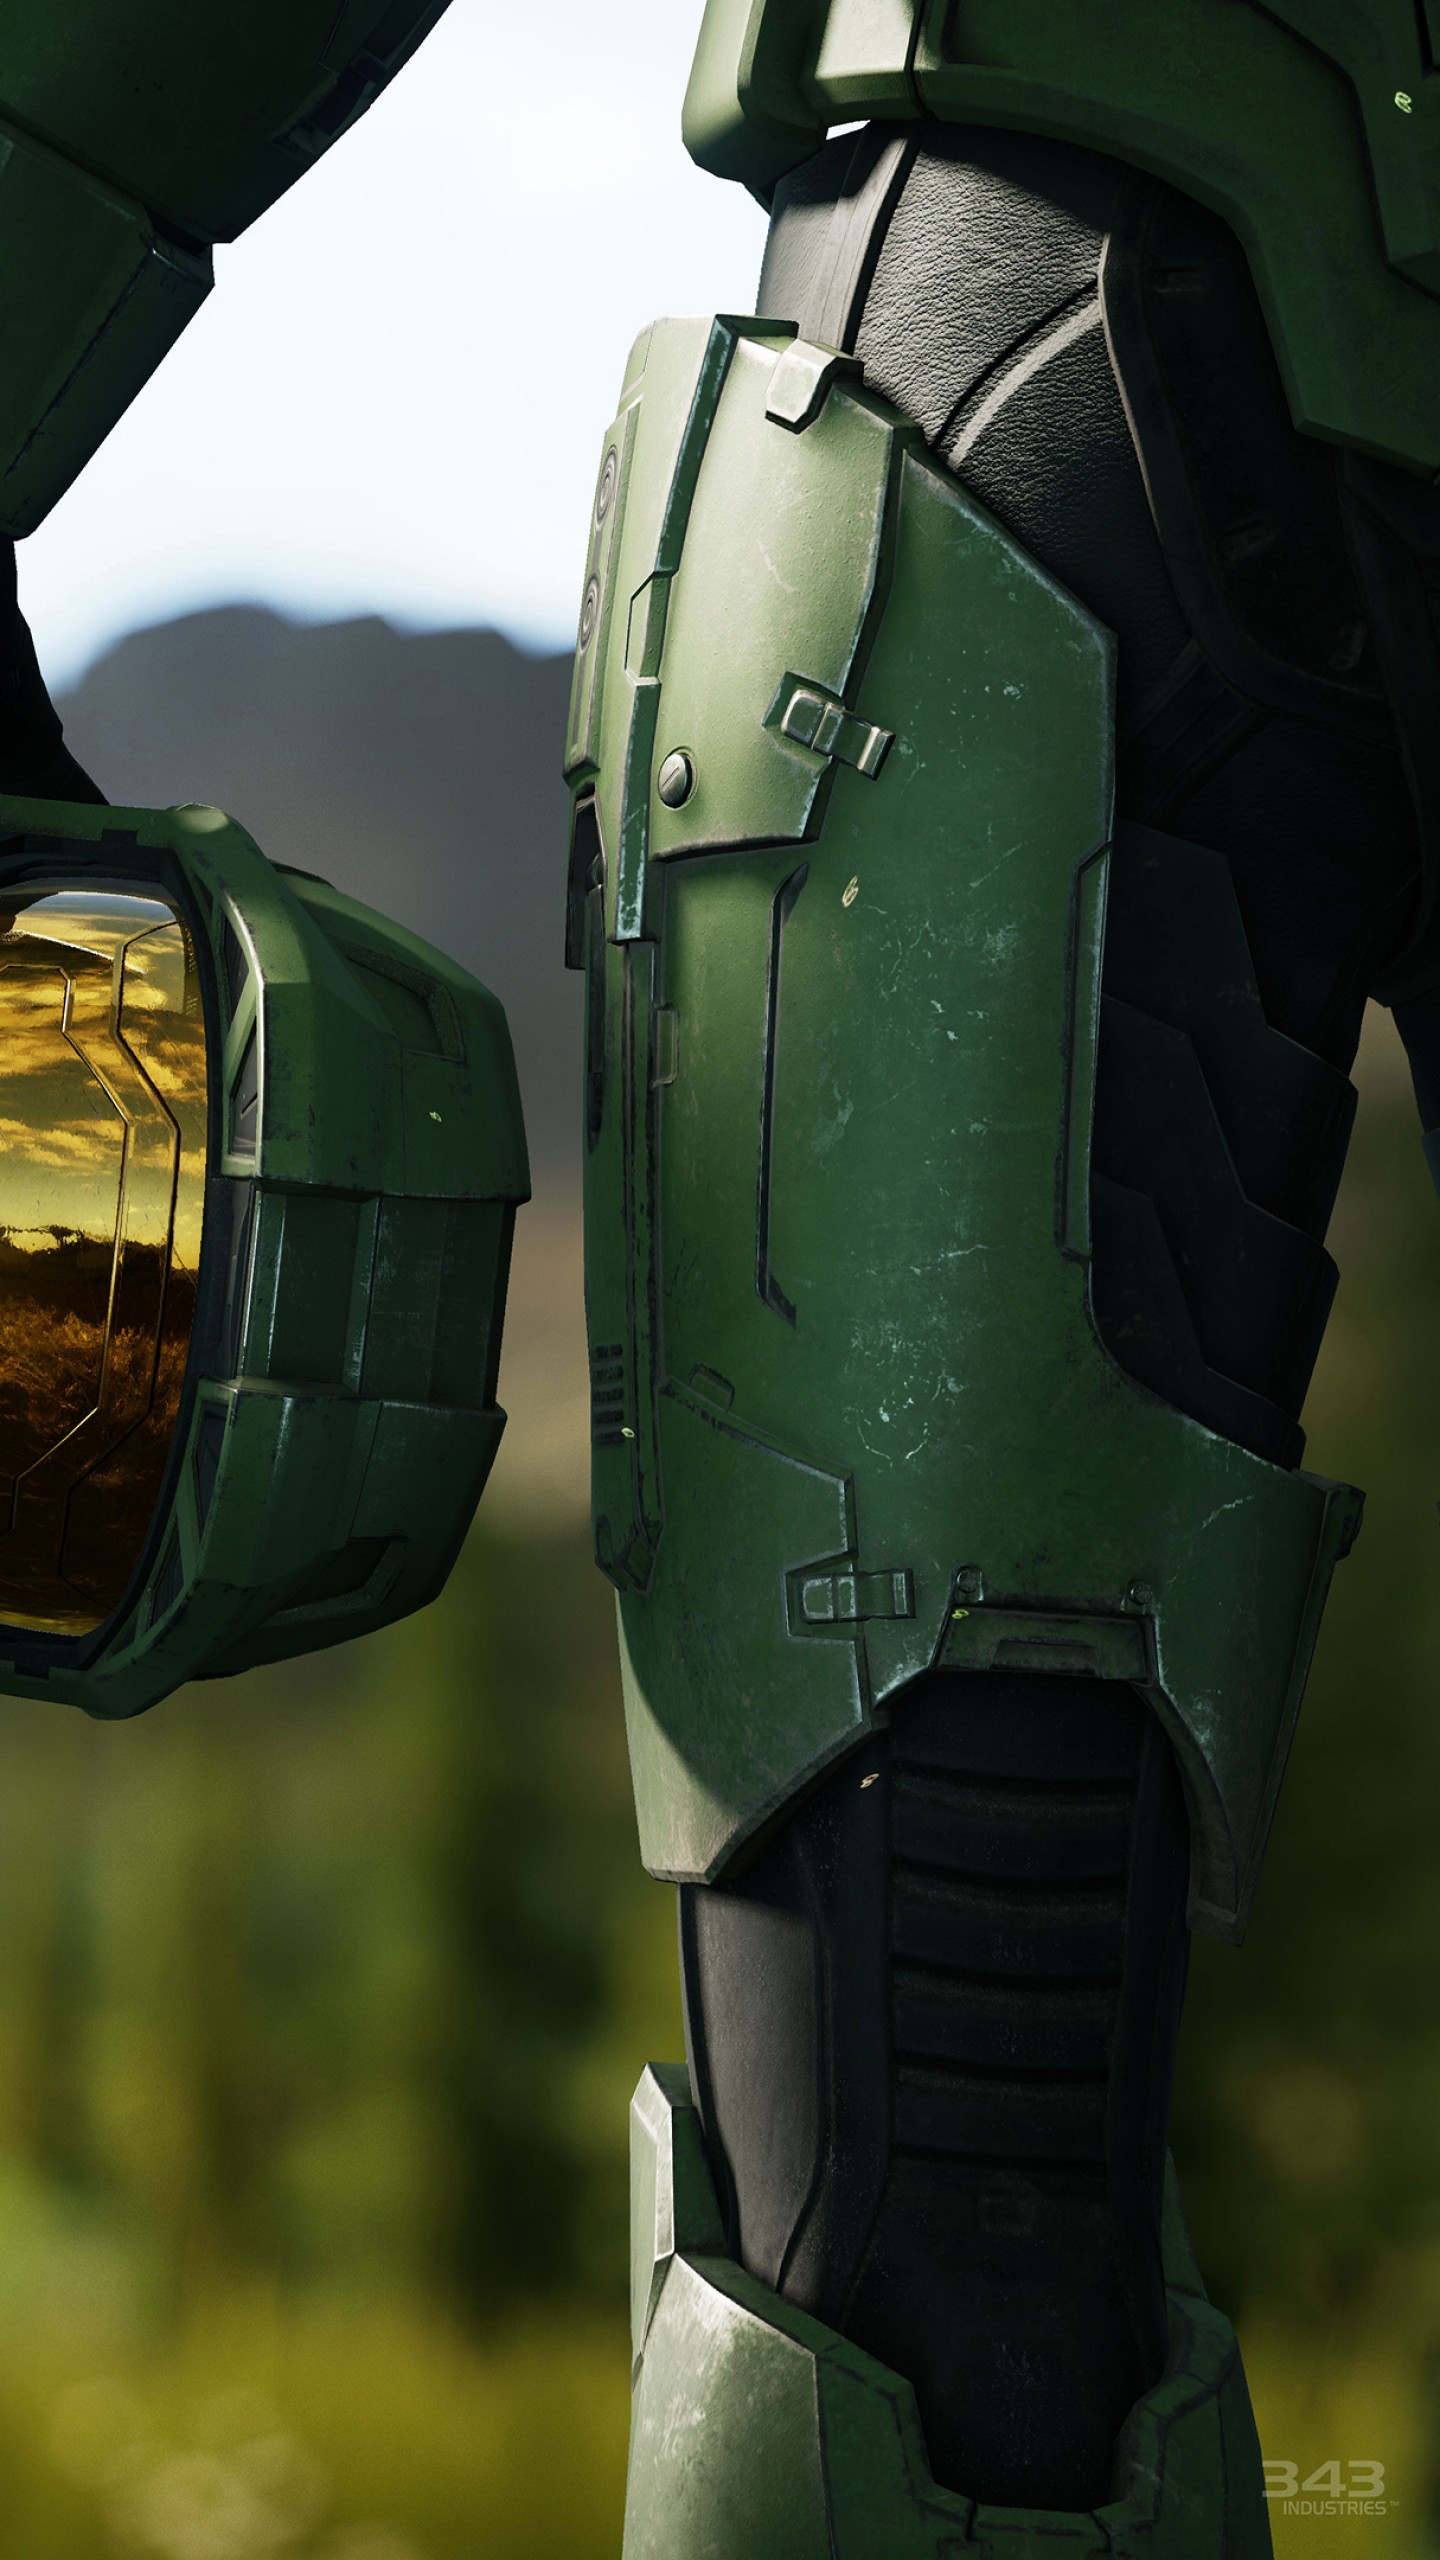 Halo Infinite Iphone Wallpaper Hd The Game Playlist